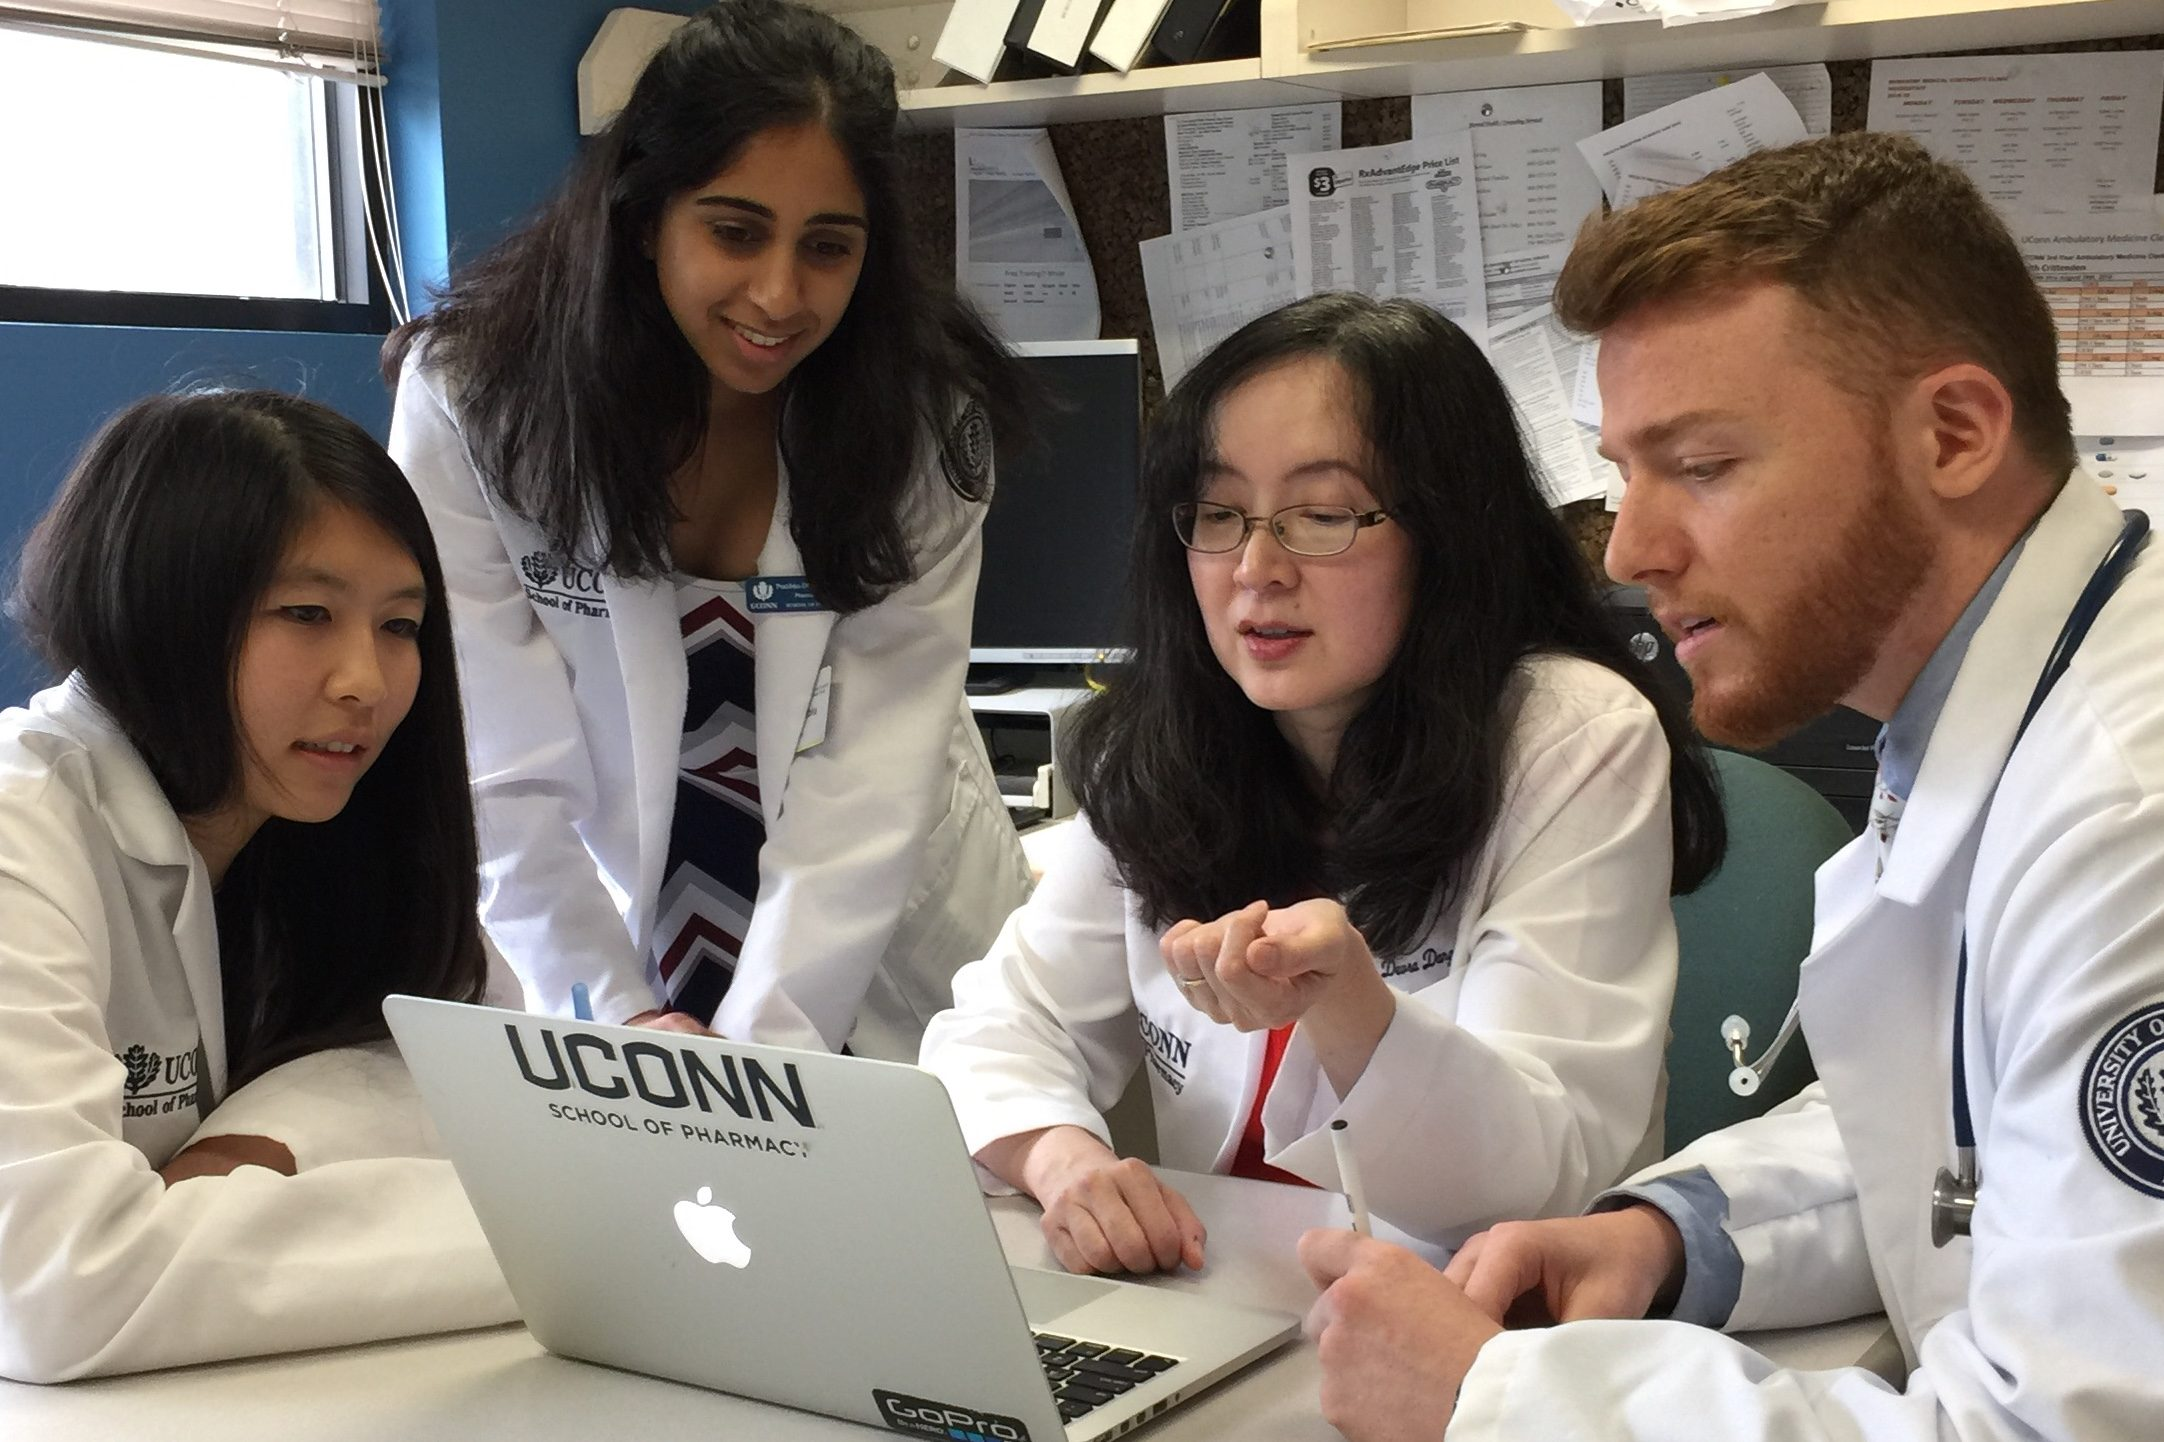 Devra Dang meets with students to discuss a patient's diagnosis.